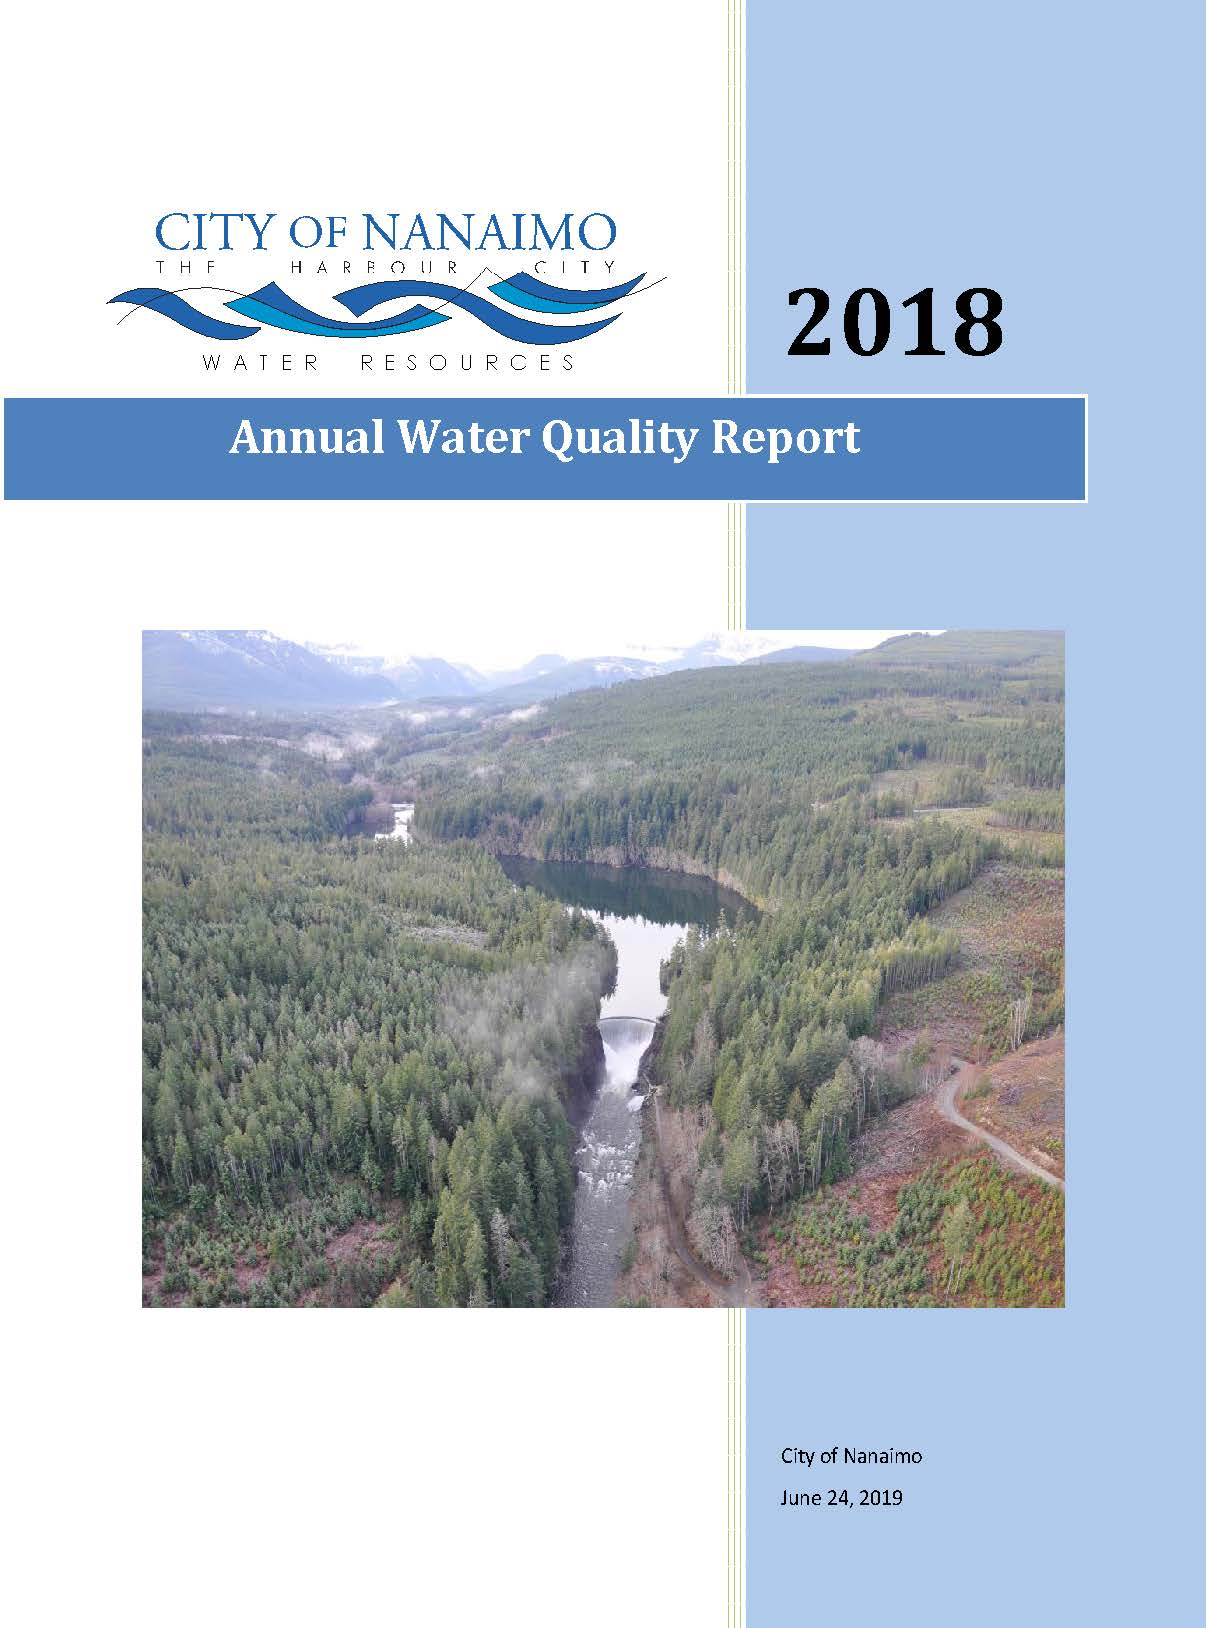 Annual Water Quality Report 2018 front cover